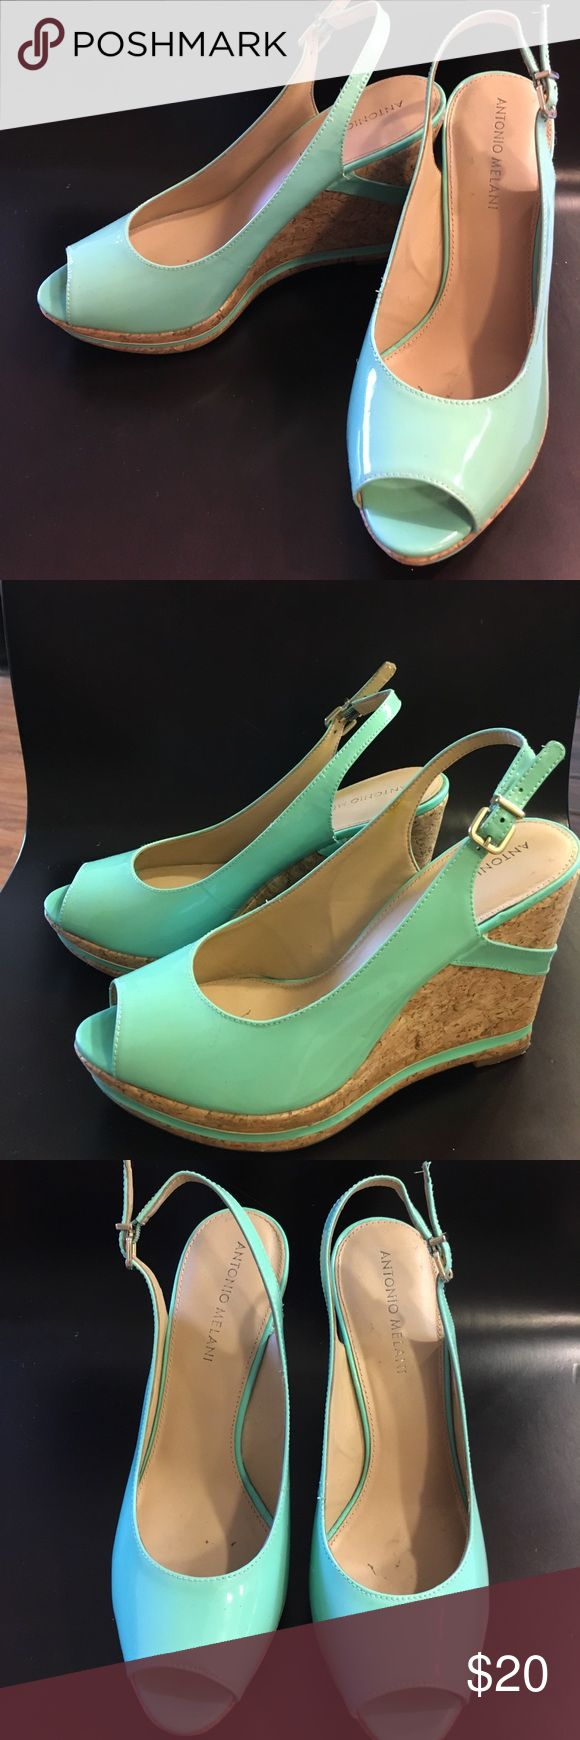 Antonio Melani Wedges Seafoam Green Wedges with slight wear marks shown in picture ANTONIO MELANI Shoes Wedges